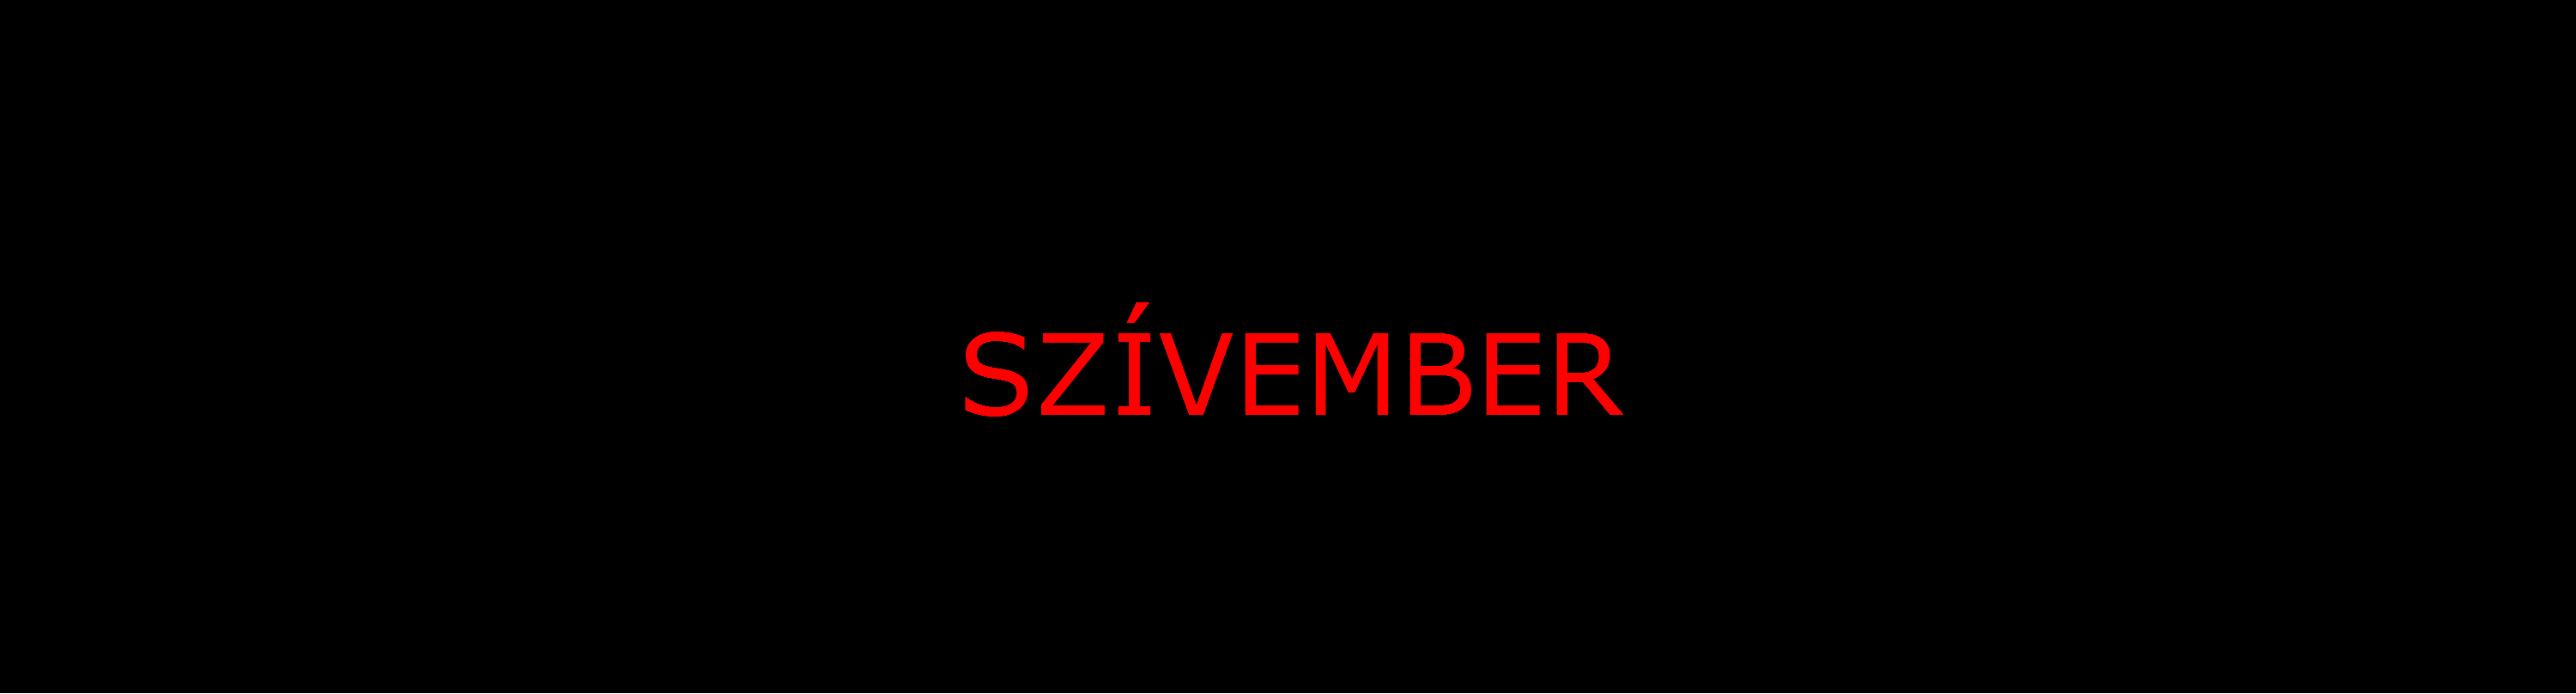 szivember.png